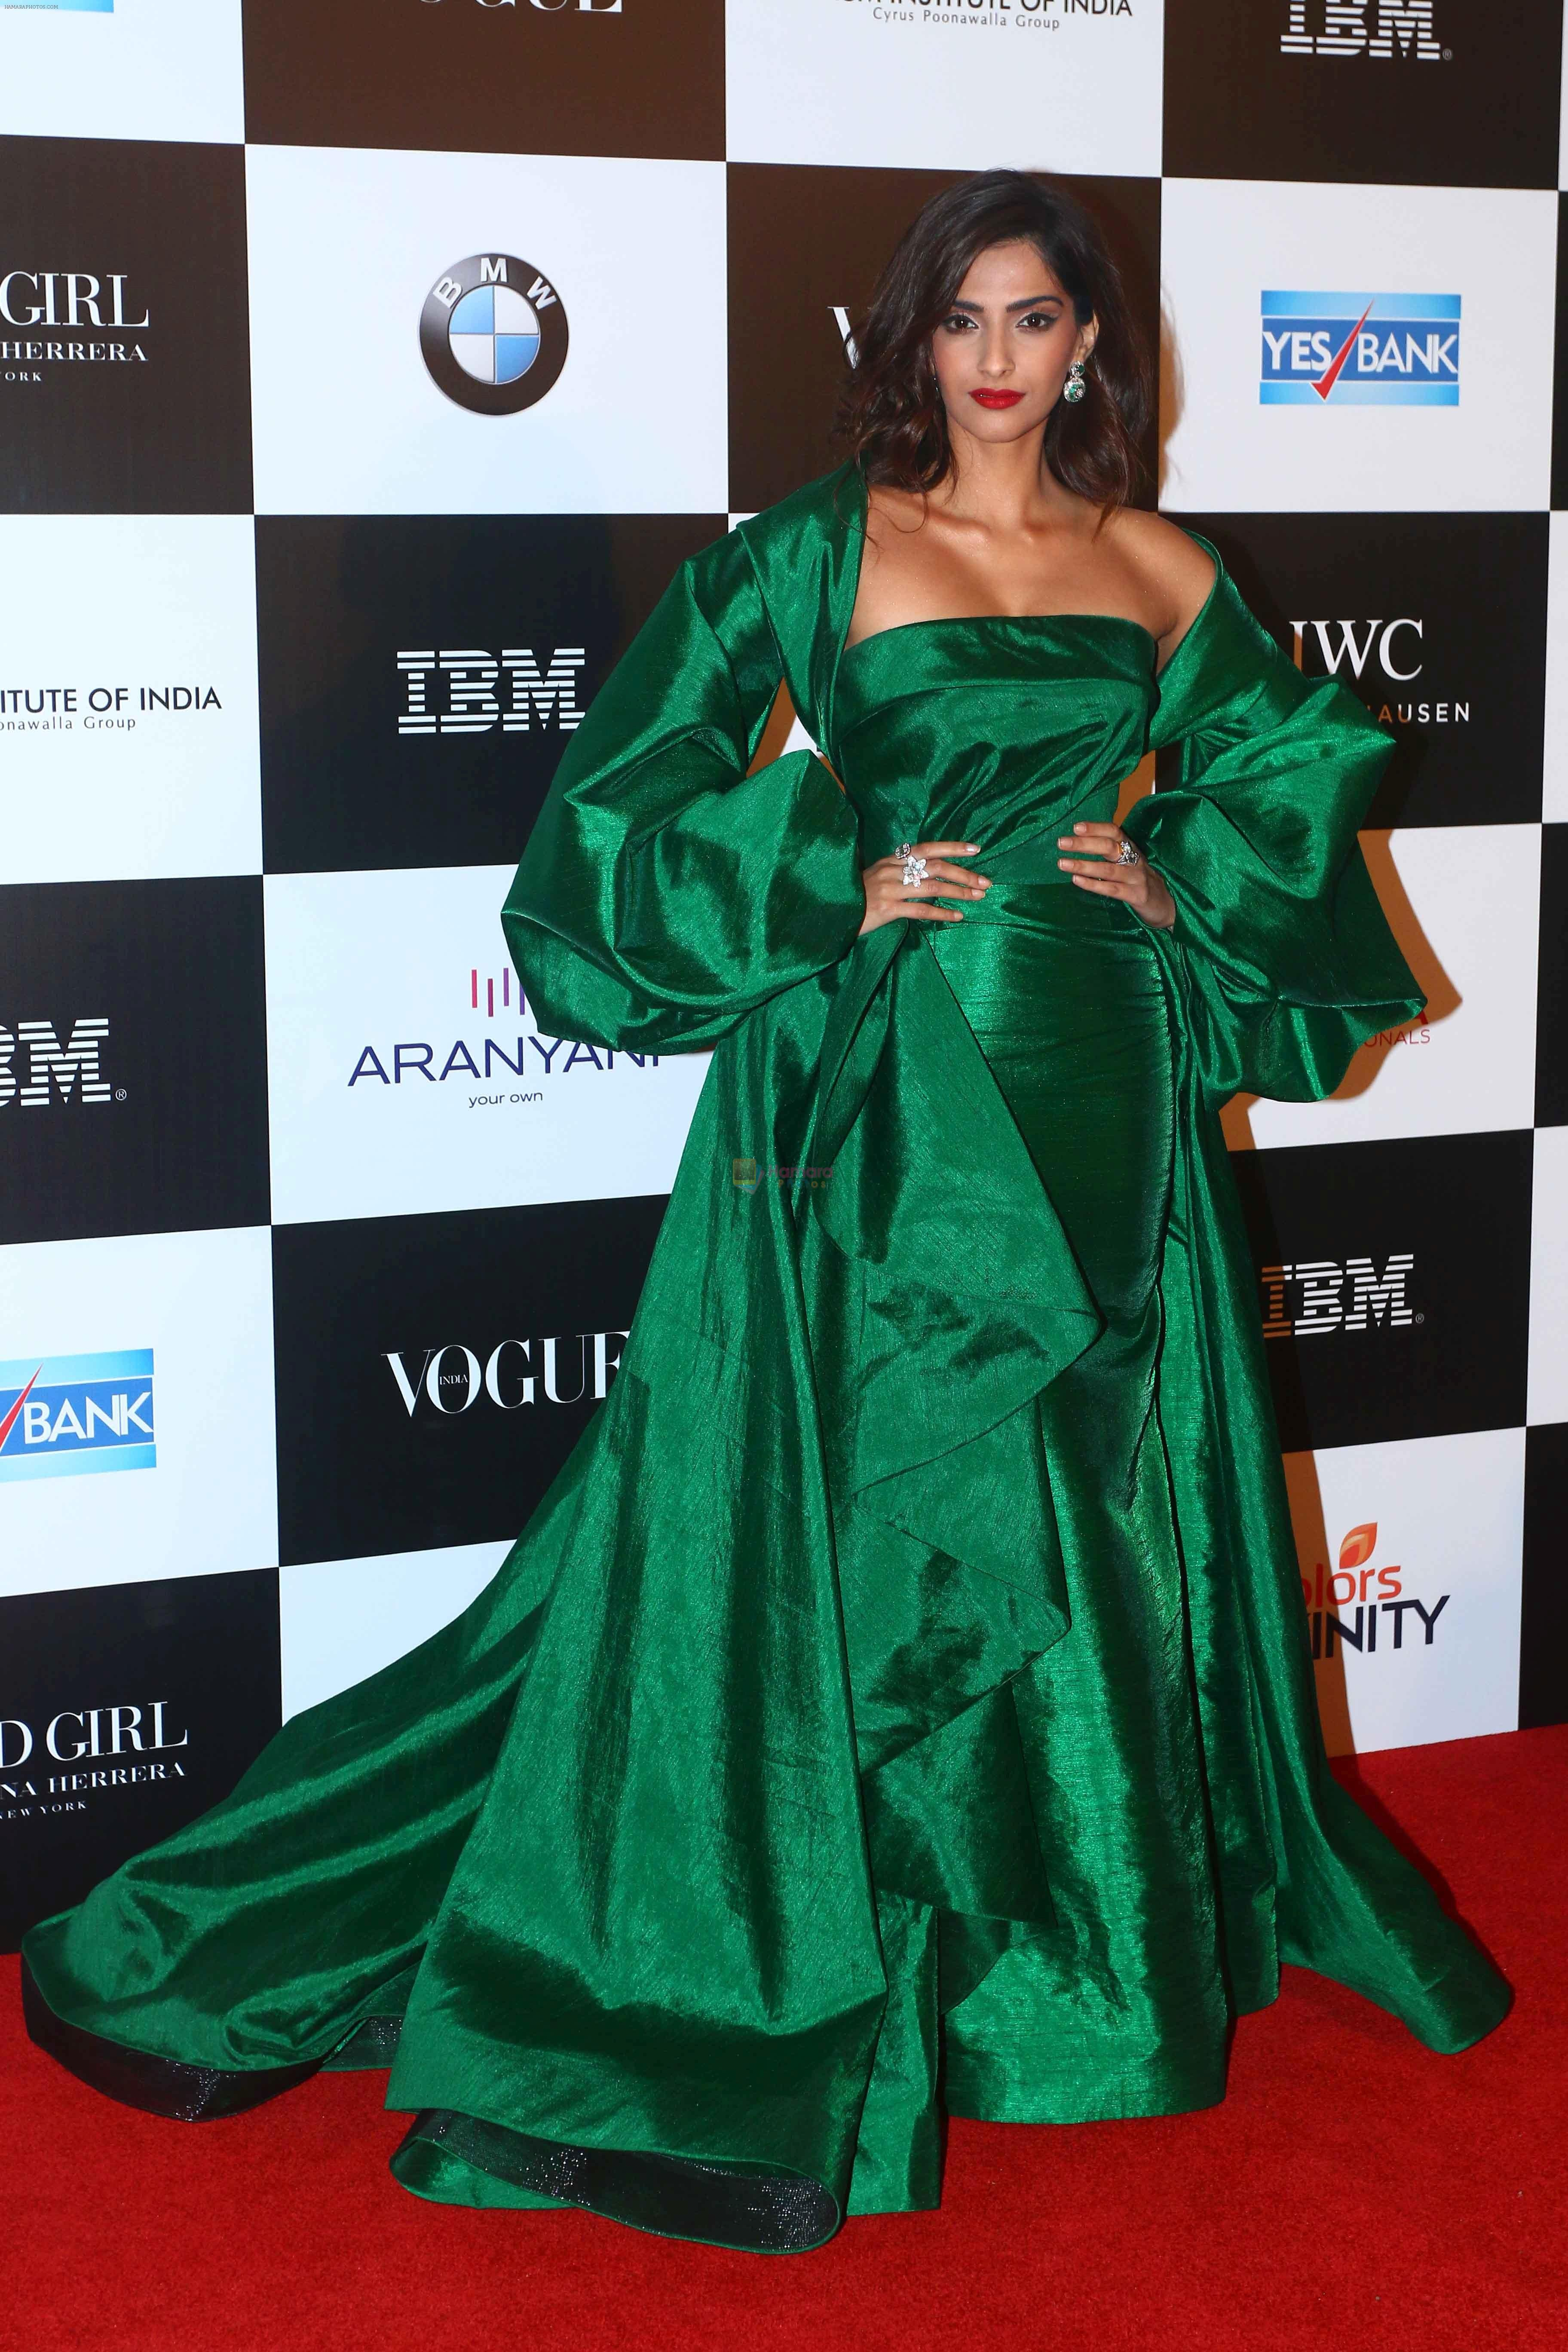 Sonam Kapoor at the Red Carpet Of Vogue Women Of The Year 2017 on 25th Sept 2017